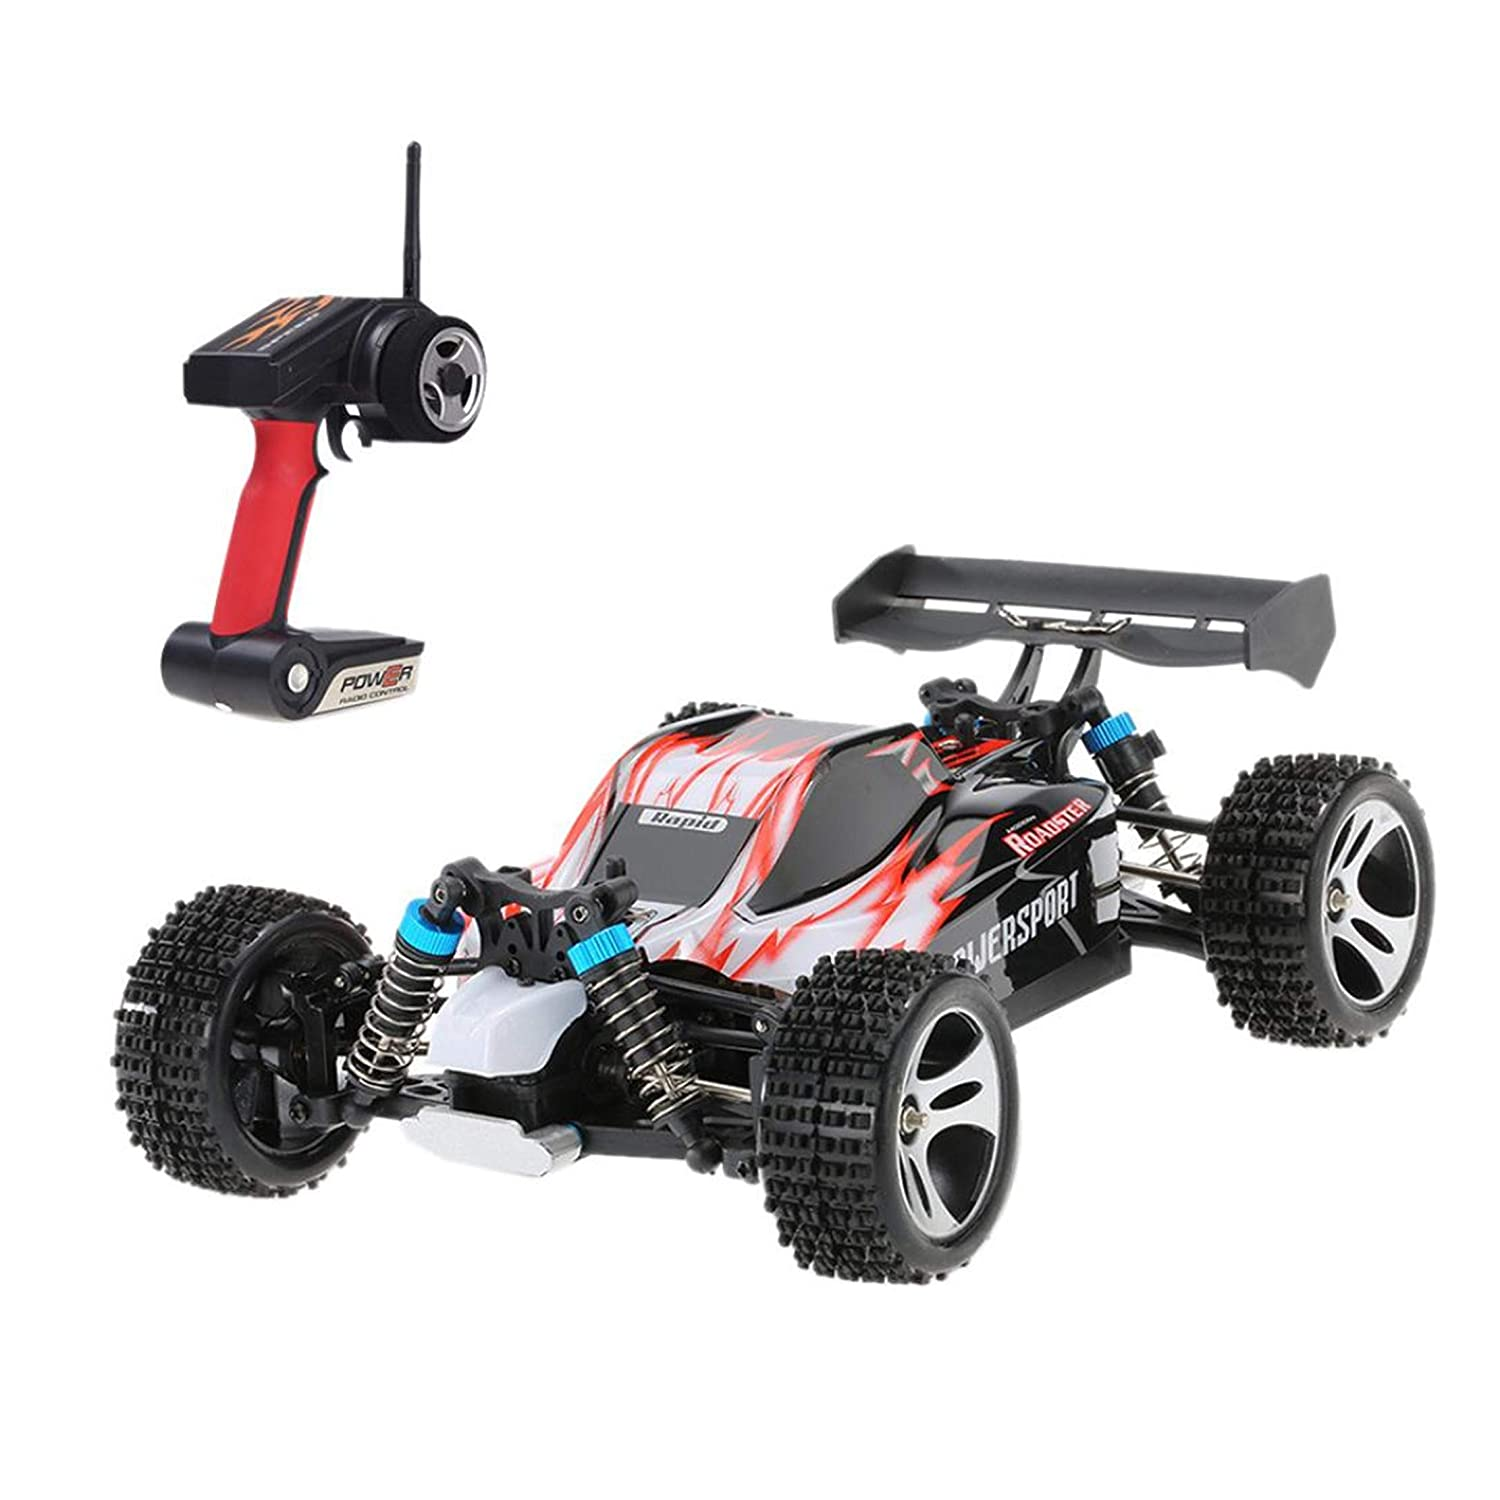 Happy Event WLtoys A959 Improved 4D 2.4G RC Car 540 Motor High Speed 50 km/STD 1: 18 Toy for Kids and Adults, Blue